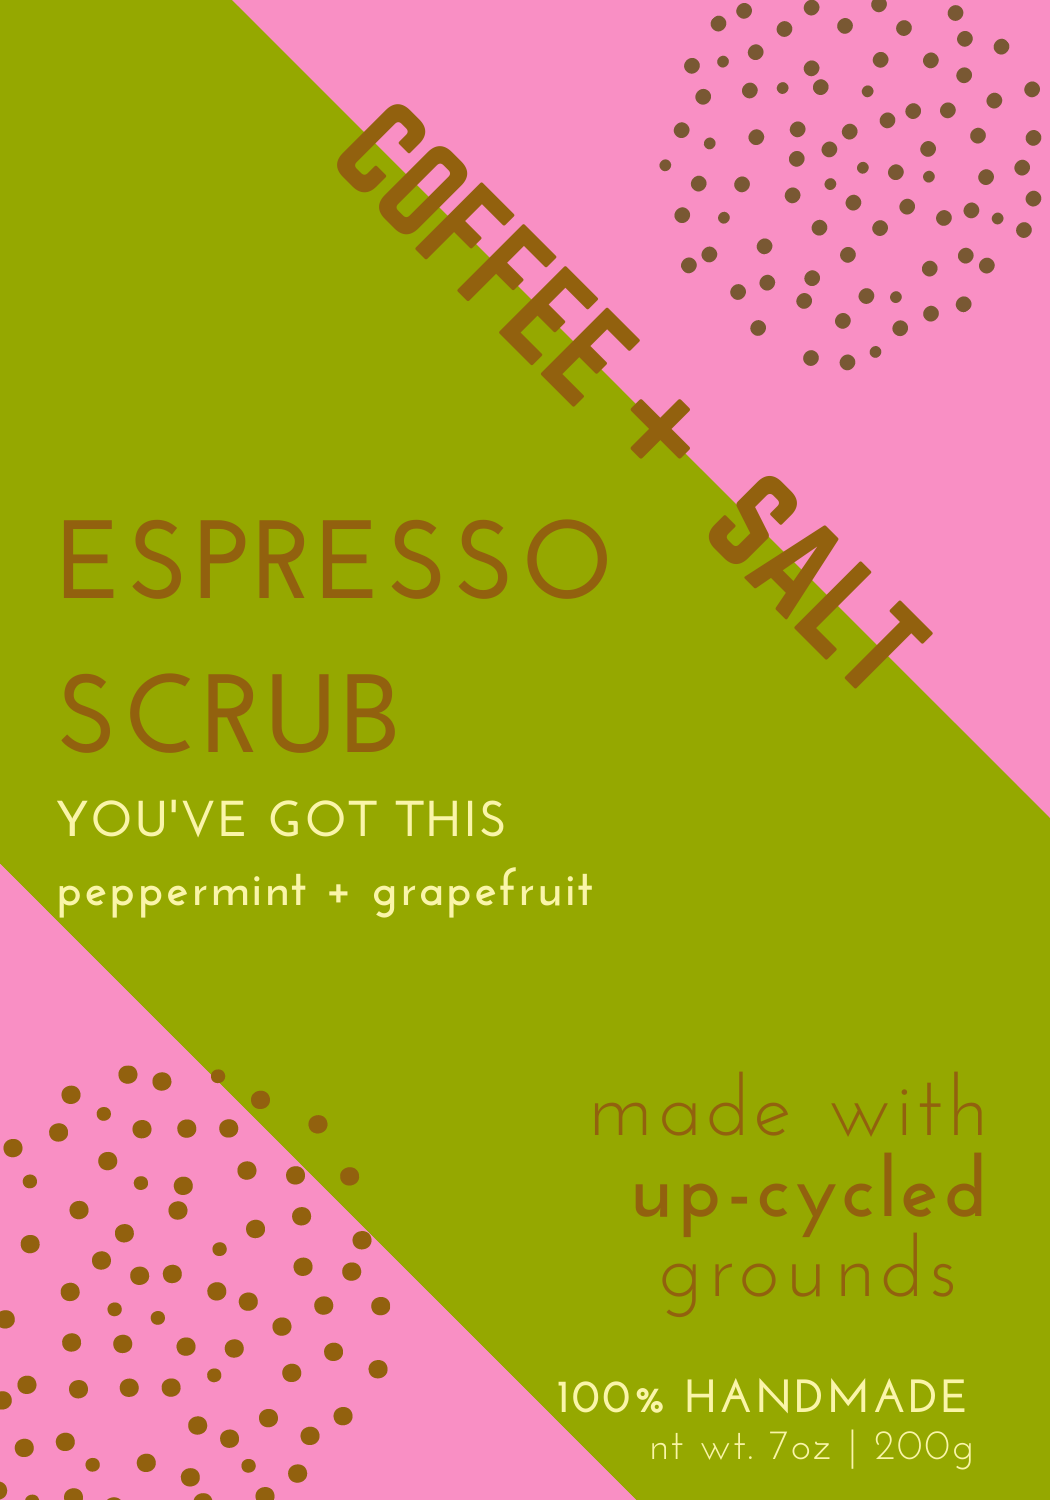 You've Got This Coffee Scrub with Peppermint and Grapefruit essential oils